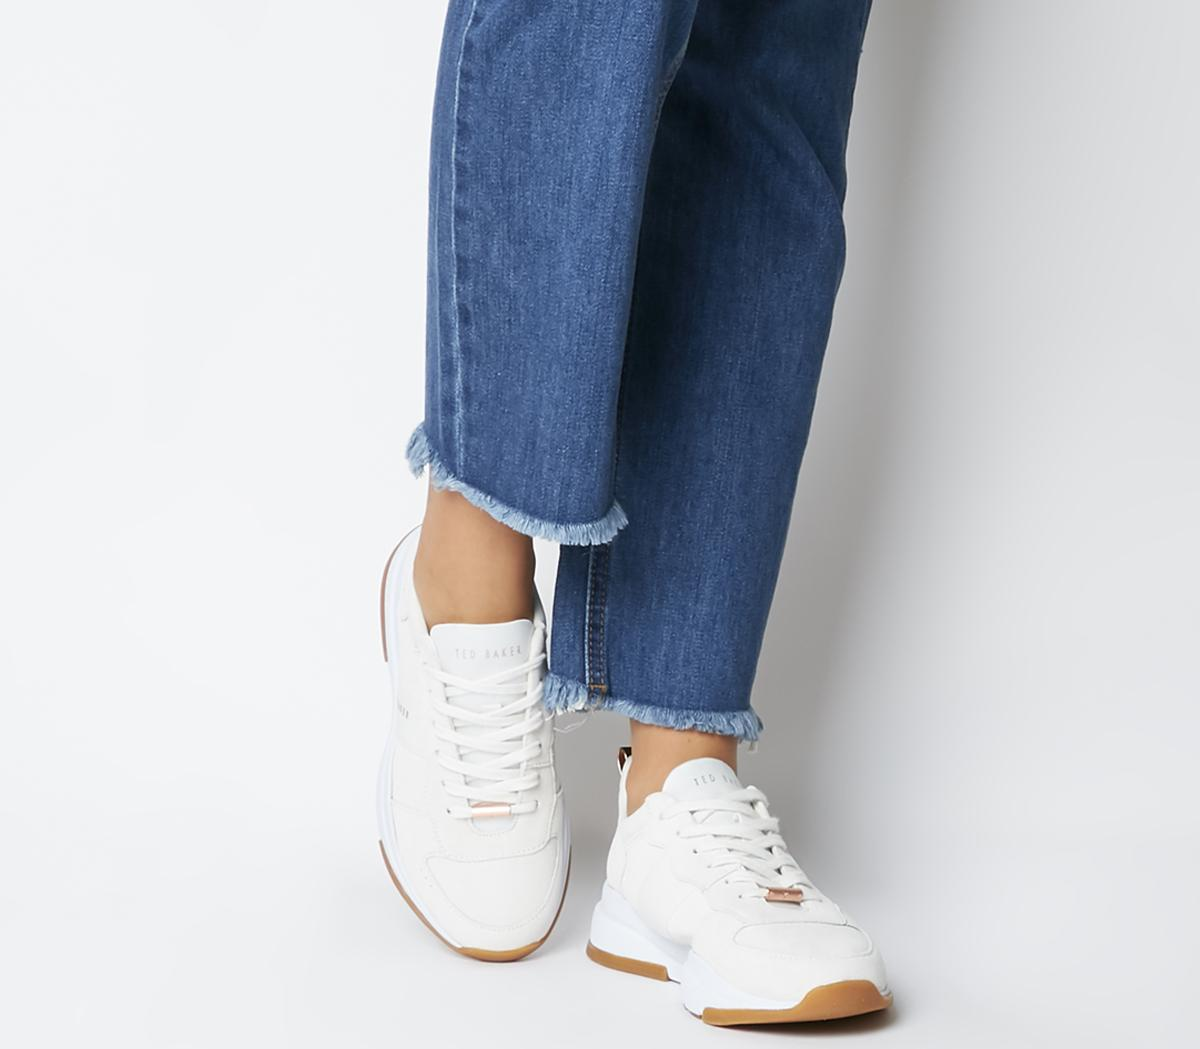 Waverdi Sneakers